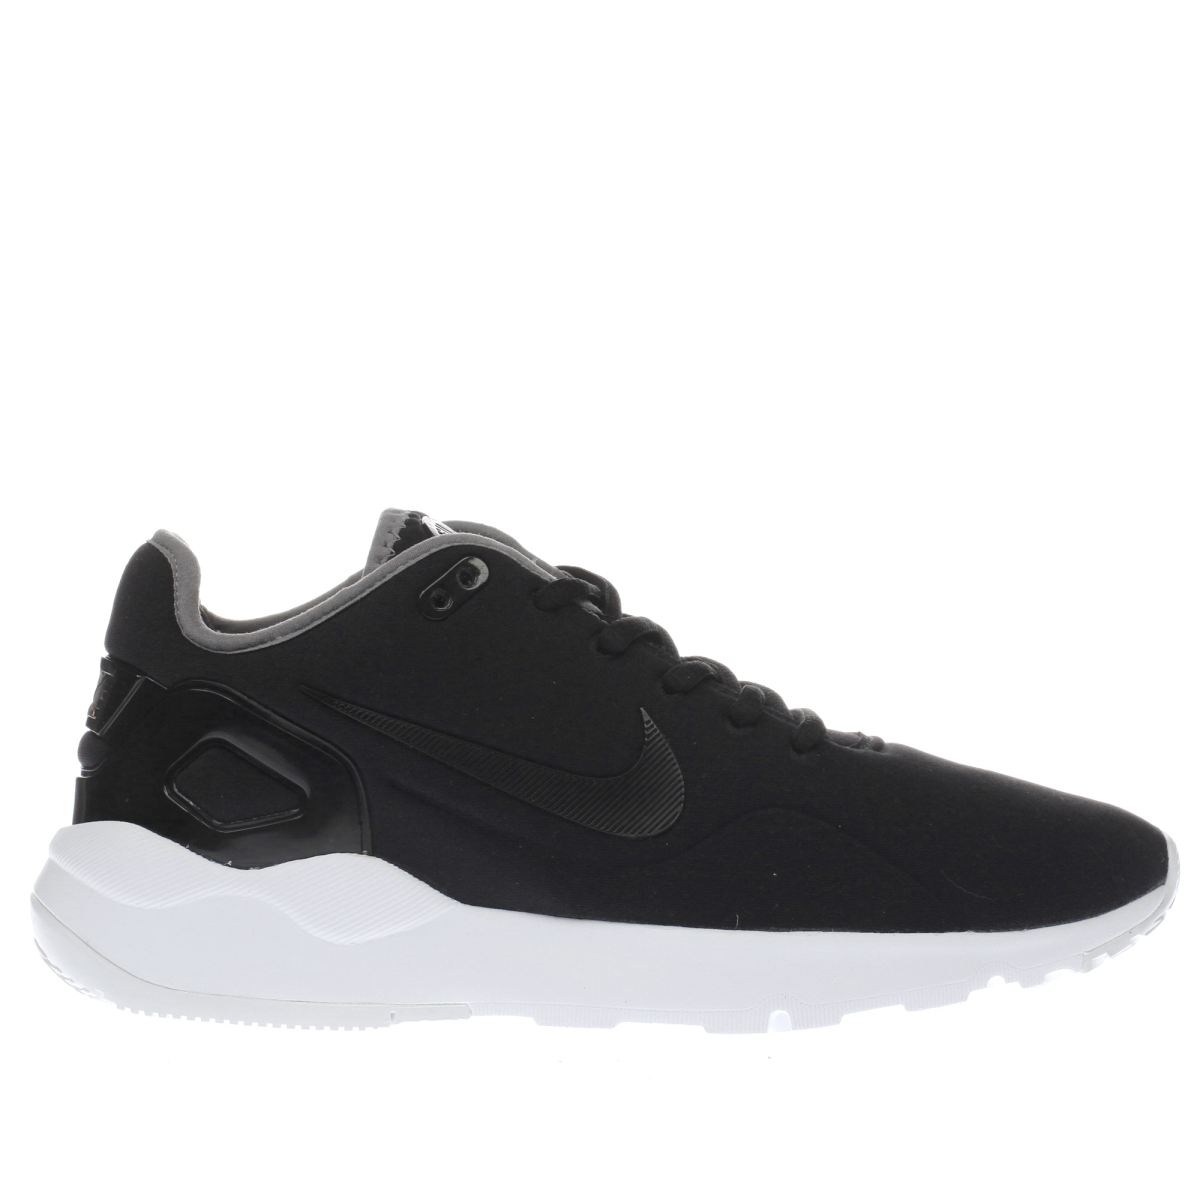 nike black & white ld runner trainers